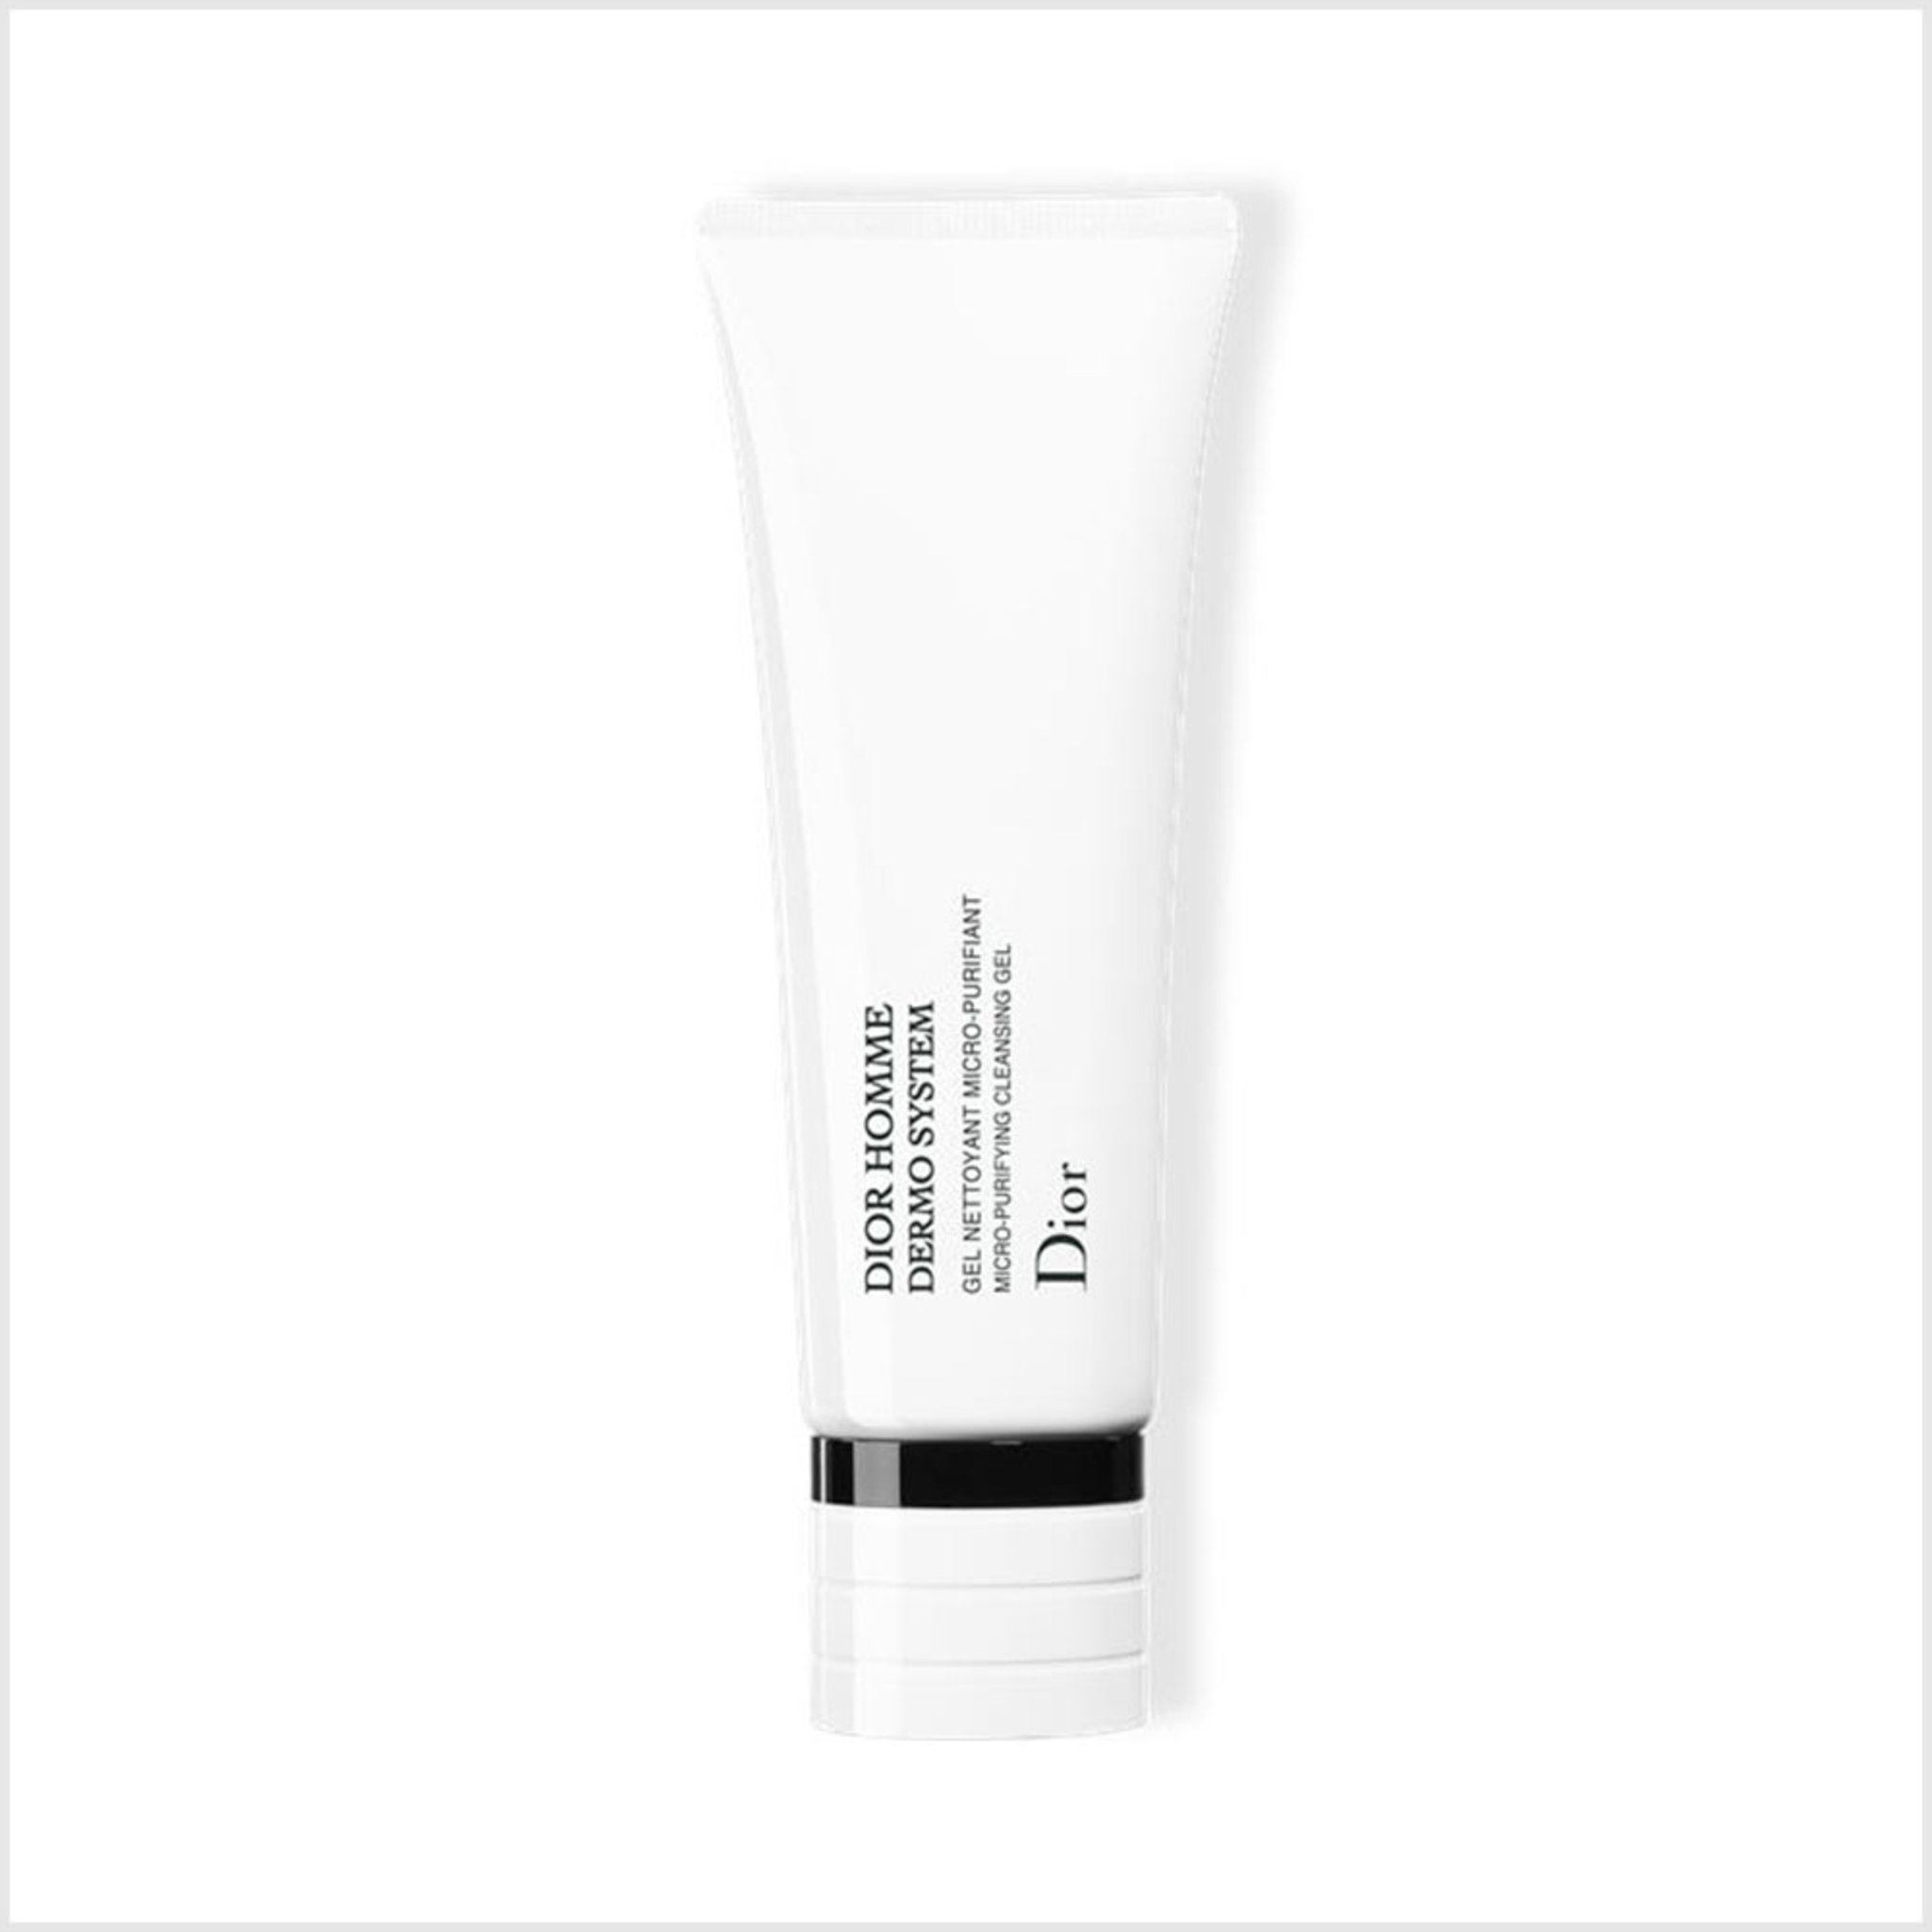 Dermo System Purifying Cleansing Gel, 125 ML